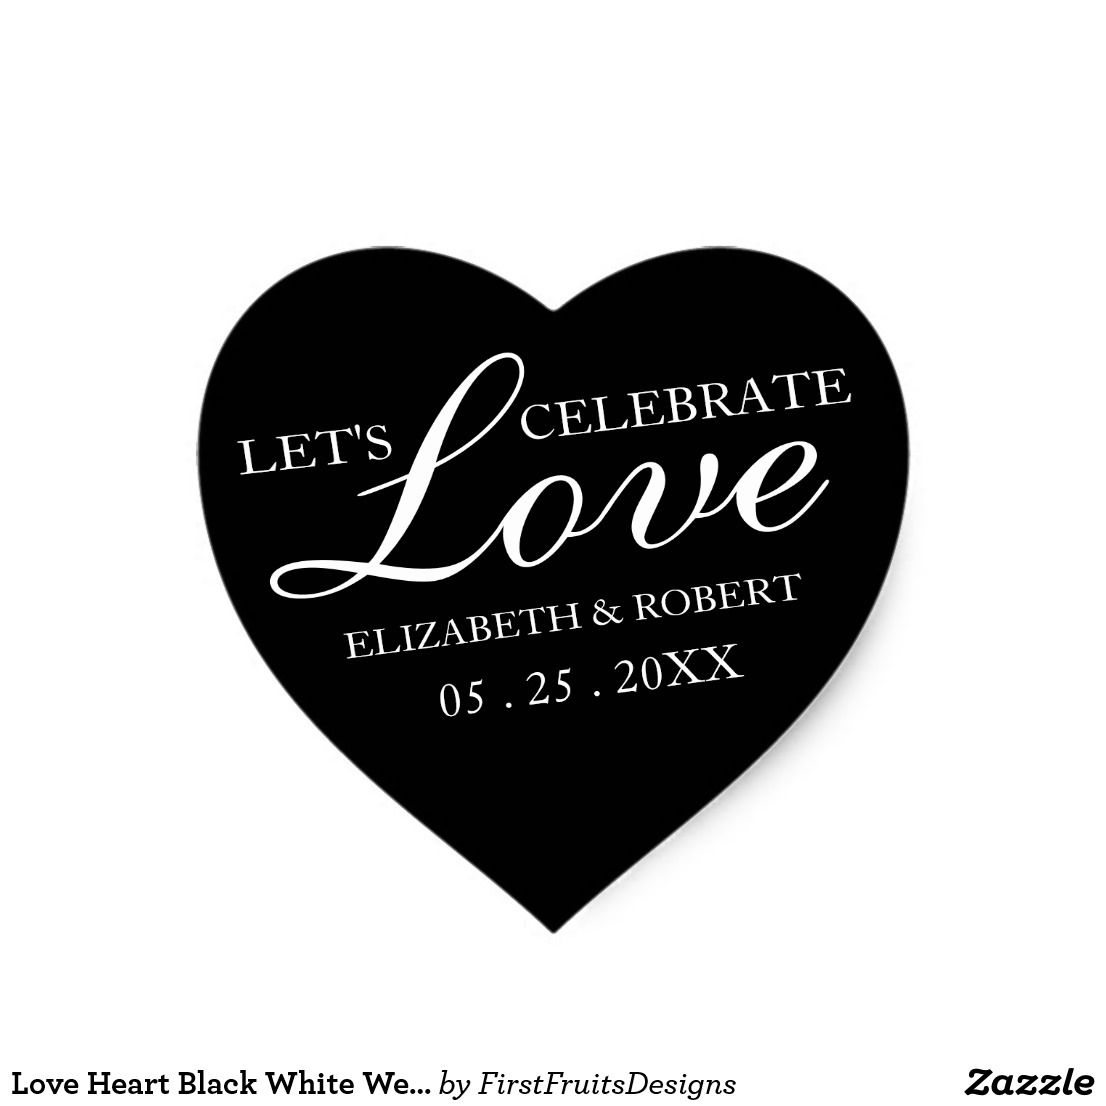 zazzle wedding invitations promo code%0A Love Heart Black White Wedding Invitation Stickers Your loved ones are  important to you